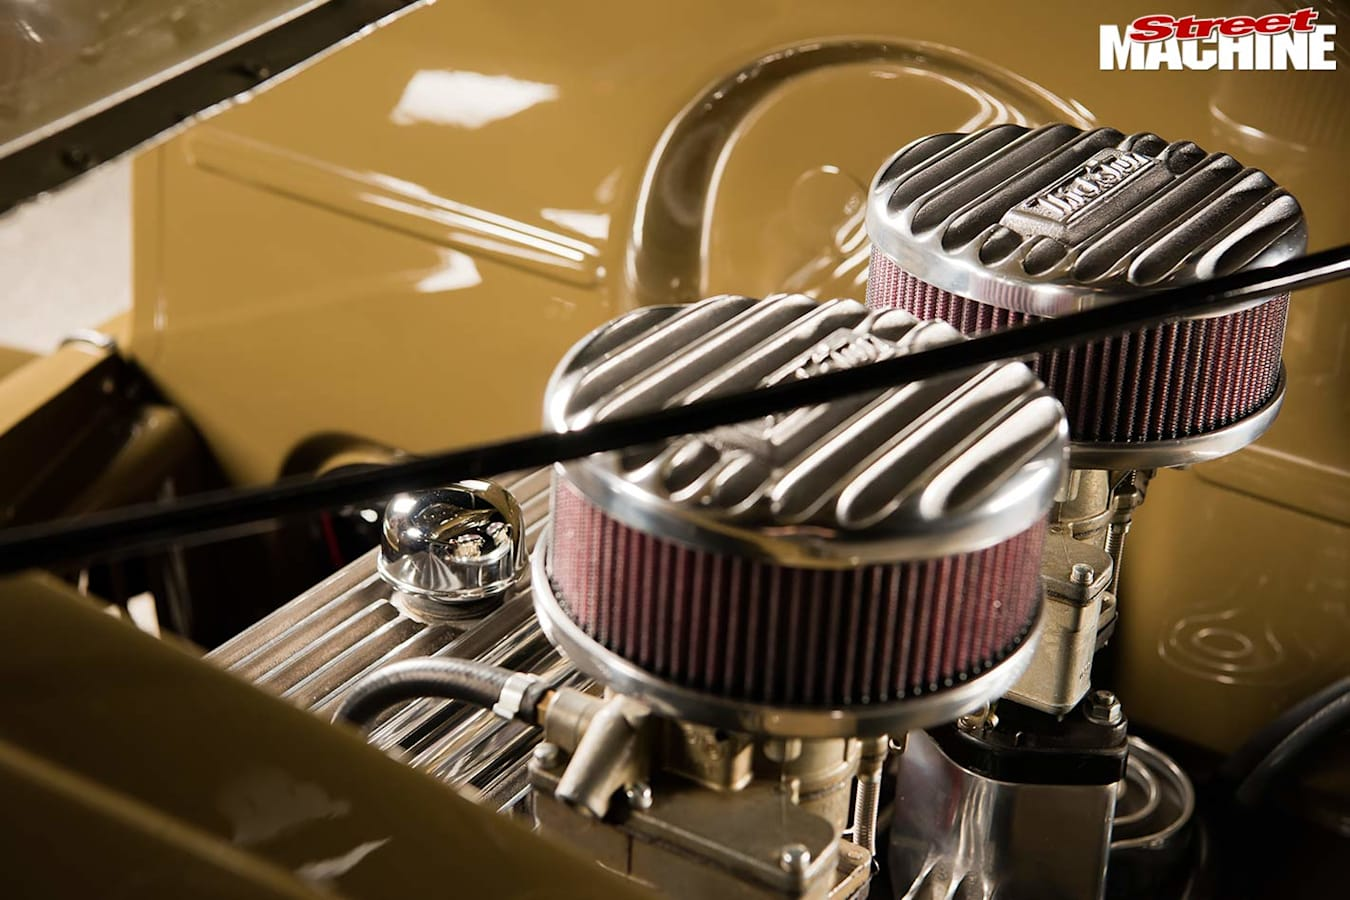 1938 Chev coupe engine